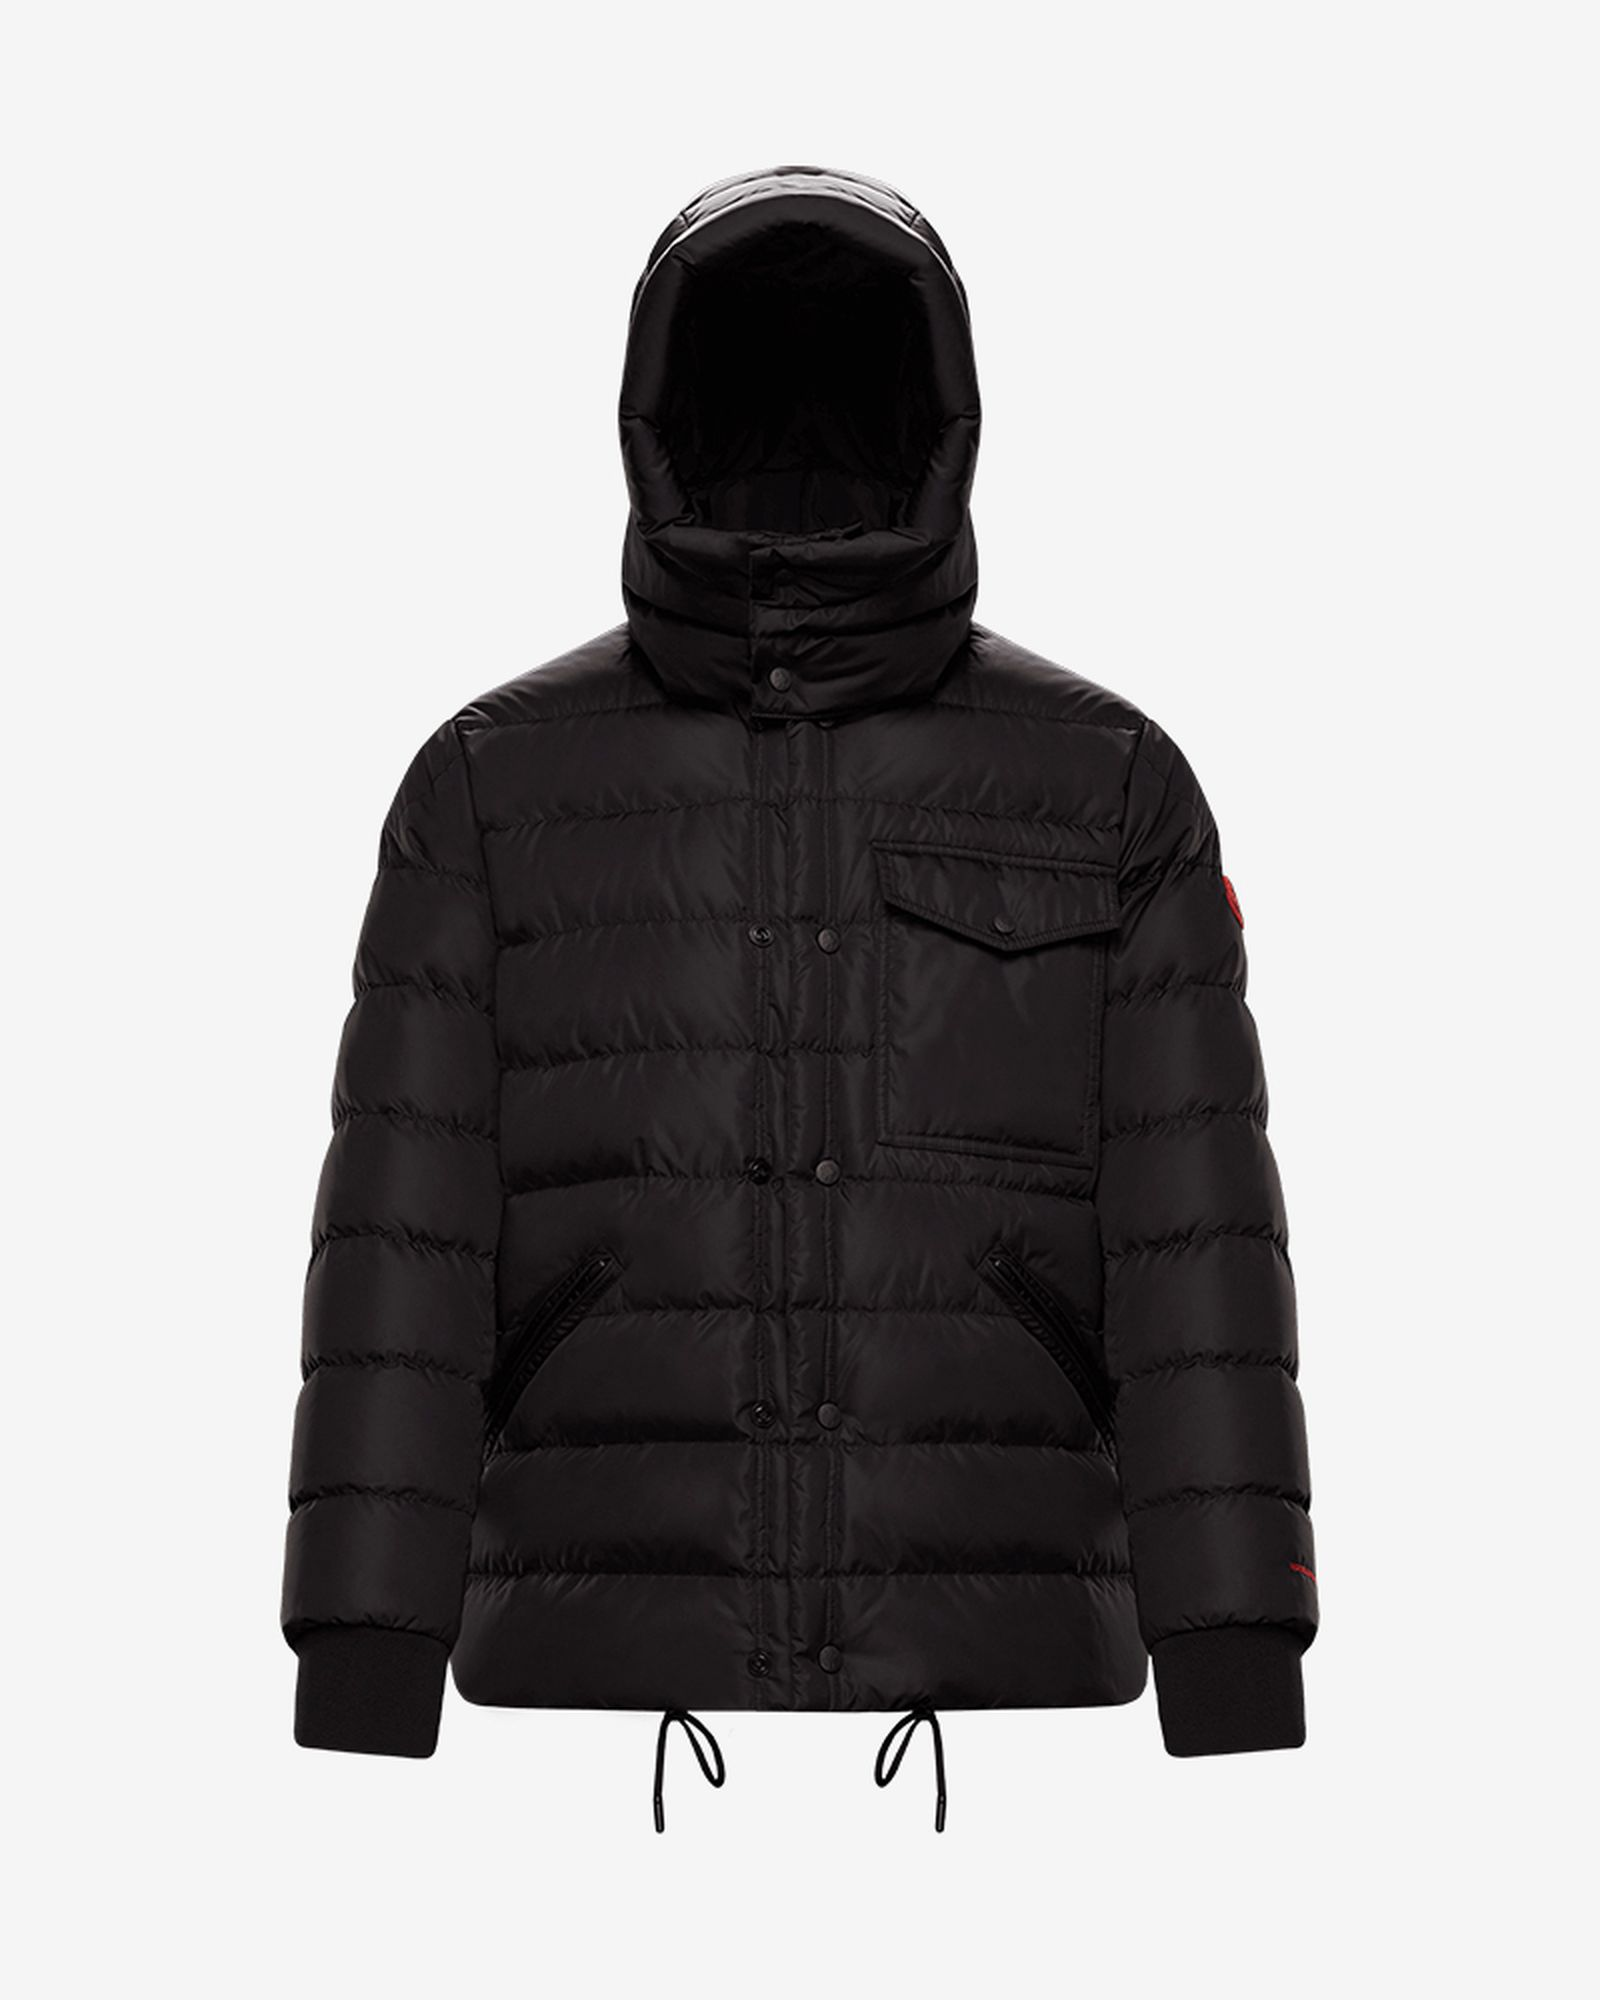 sustainable-moncler-jackets-10